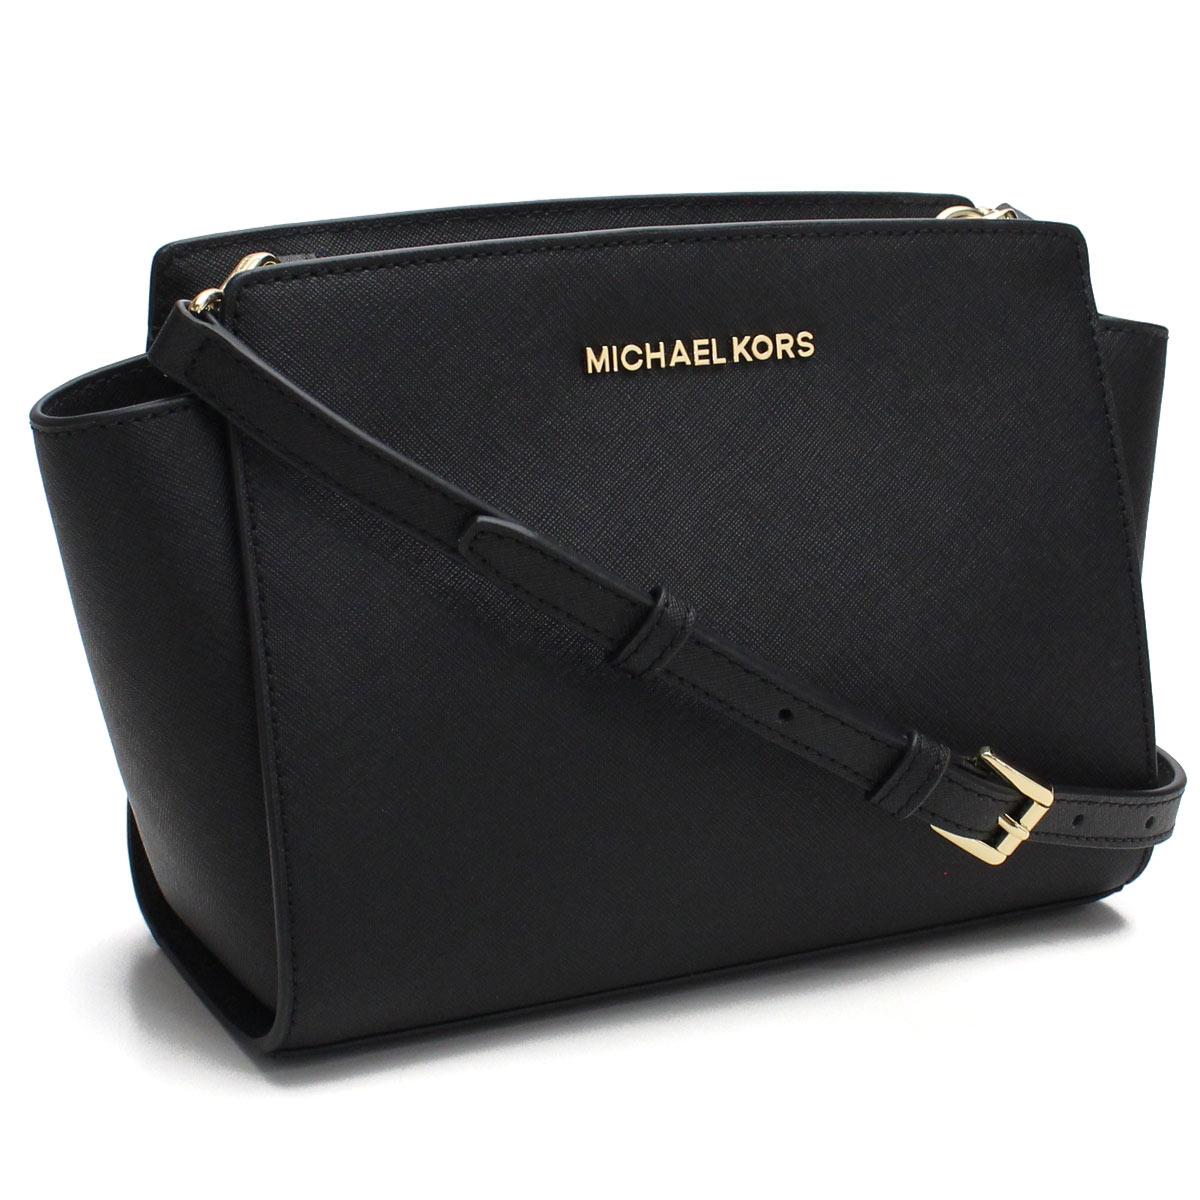 70d086f0a52e )Michael Kors (MICHAEL KORS) SELMA shoulder bag 30T3GLMM2L BLACK black(  taxfree/send by EMS/authentic/A brand new item ) | Rakuten Global Market